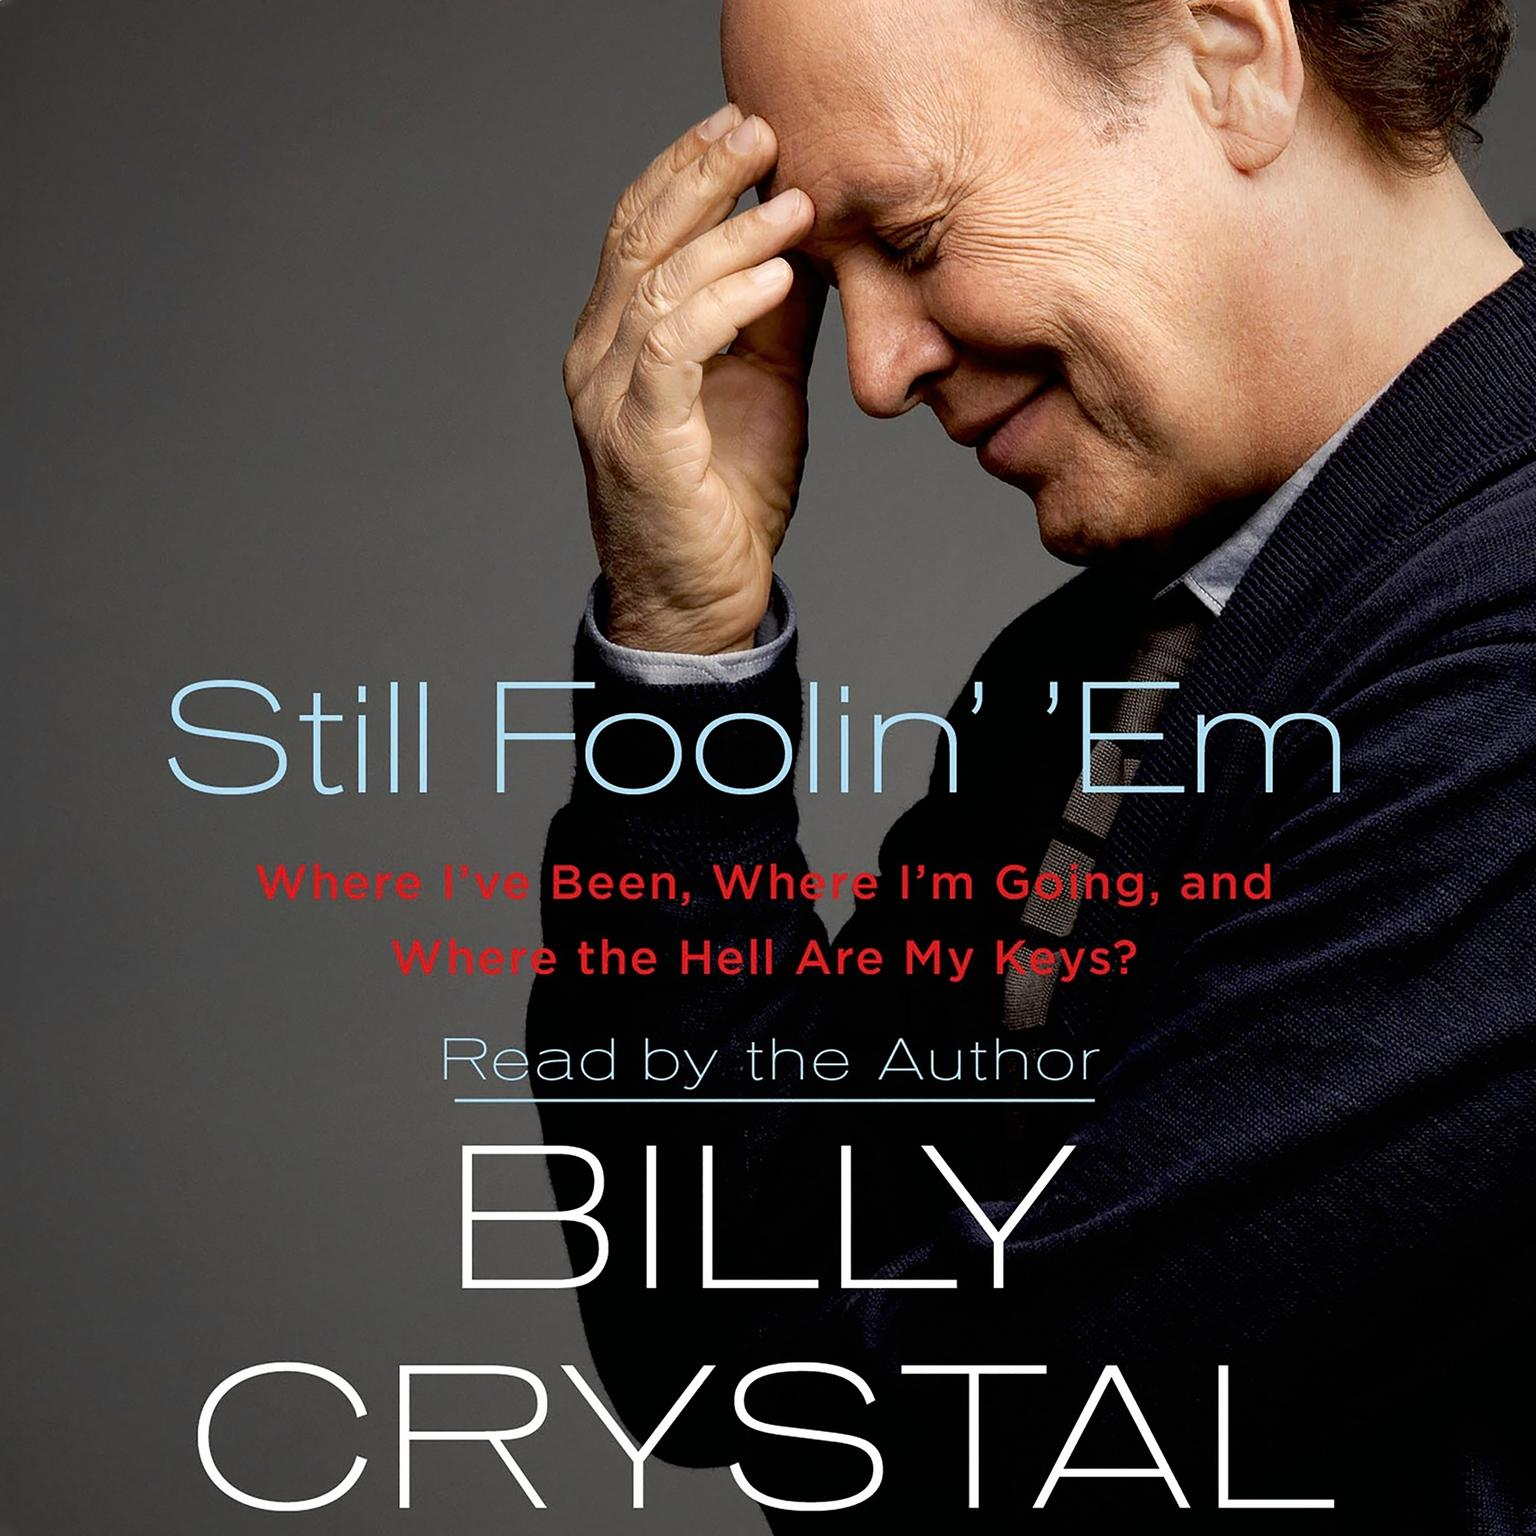 Printable Still Foolin' 'Em: Where I've Been, Where I'm Going, and Where the Hell Are My Keys? Audiobook Cover Art